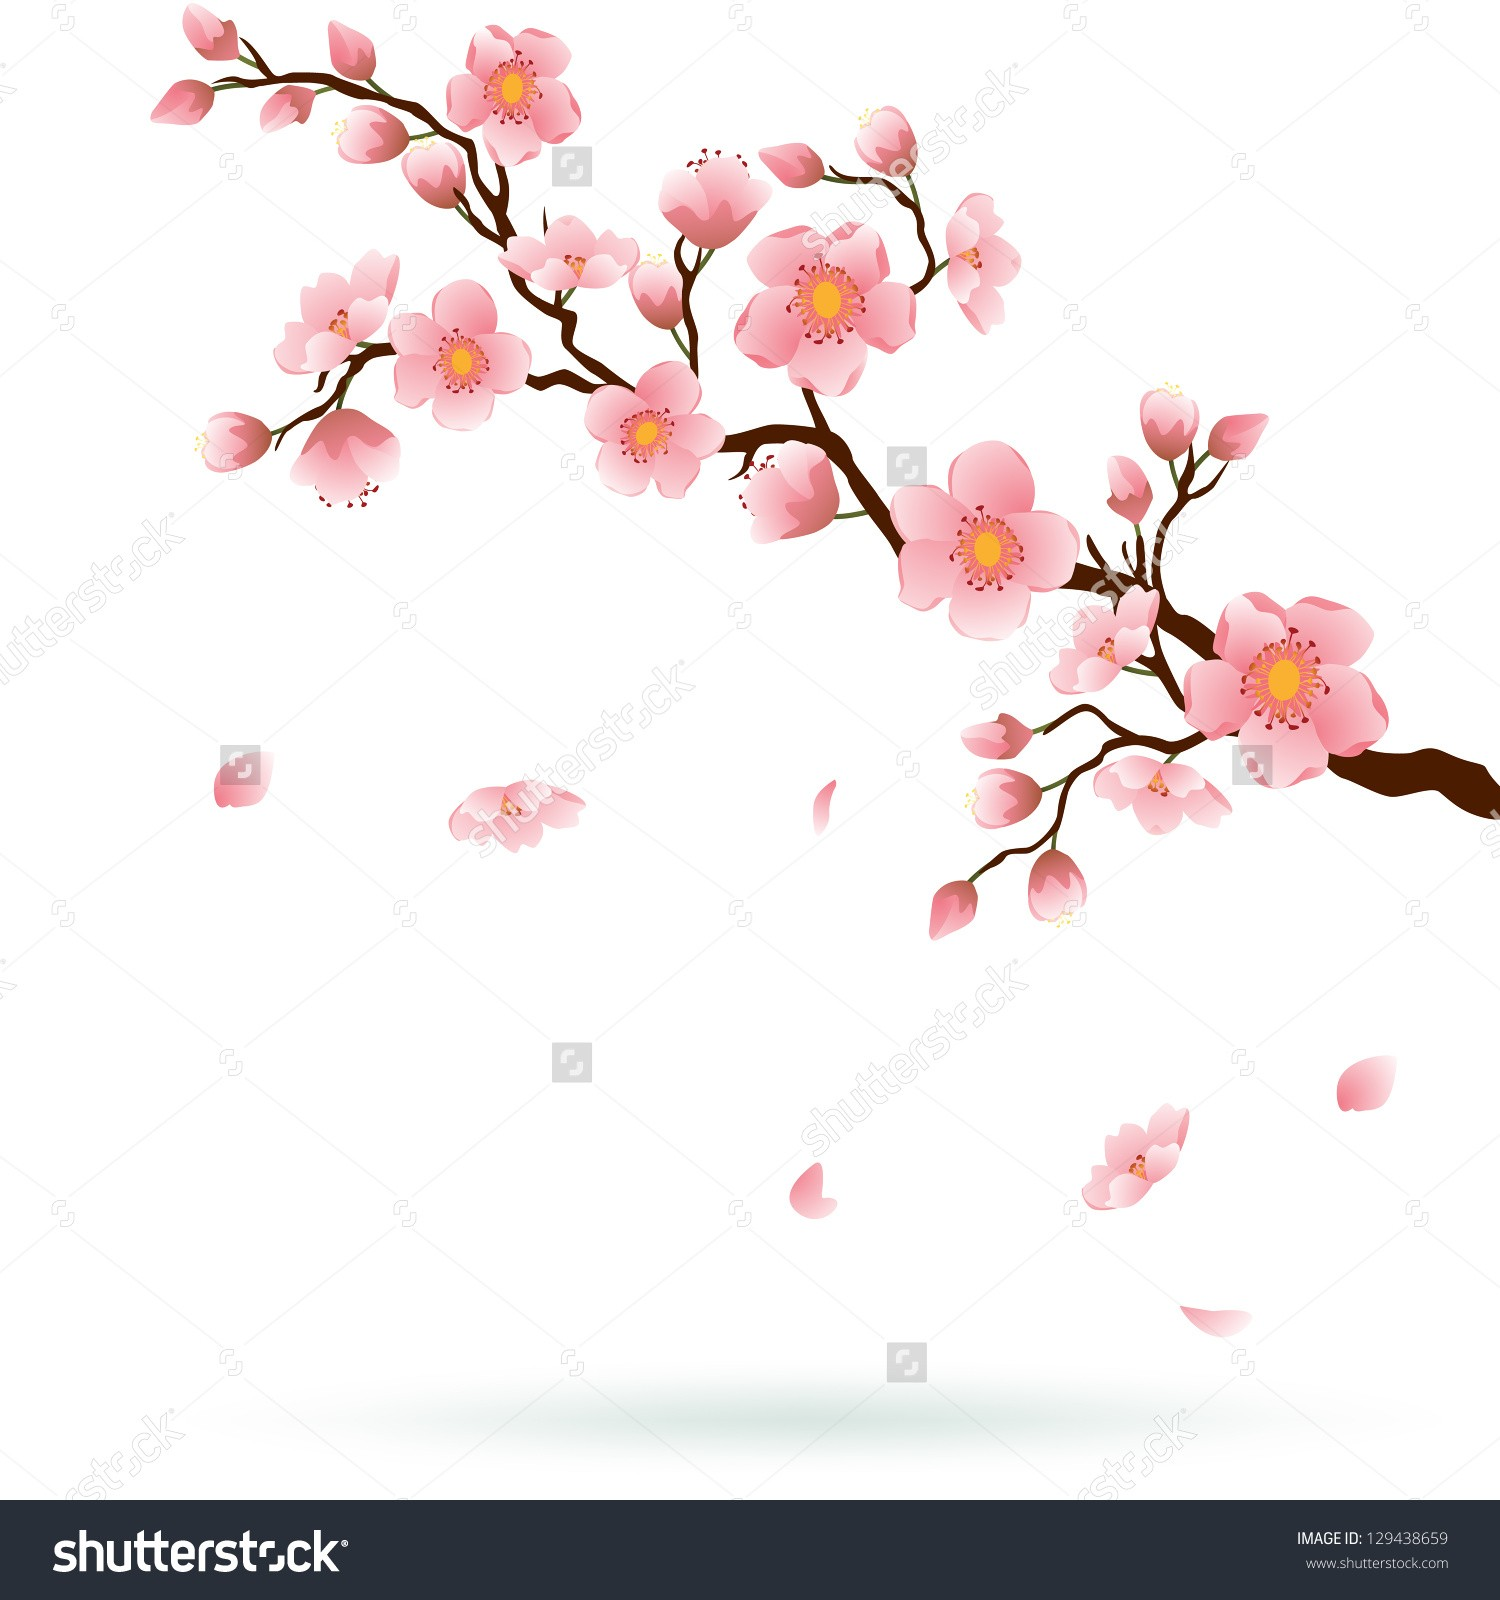 1500x1600 Cherry Blossom Tree Drawing Best Cherry Blossom Tree Drawing